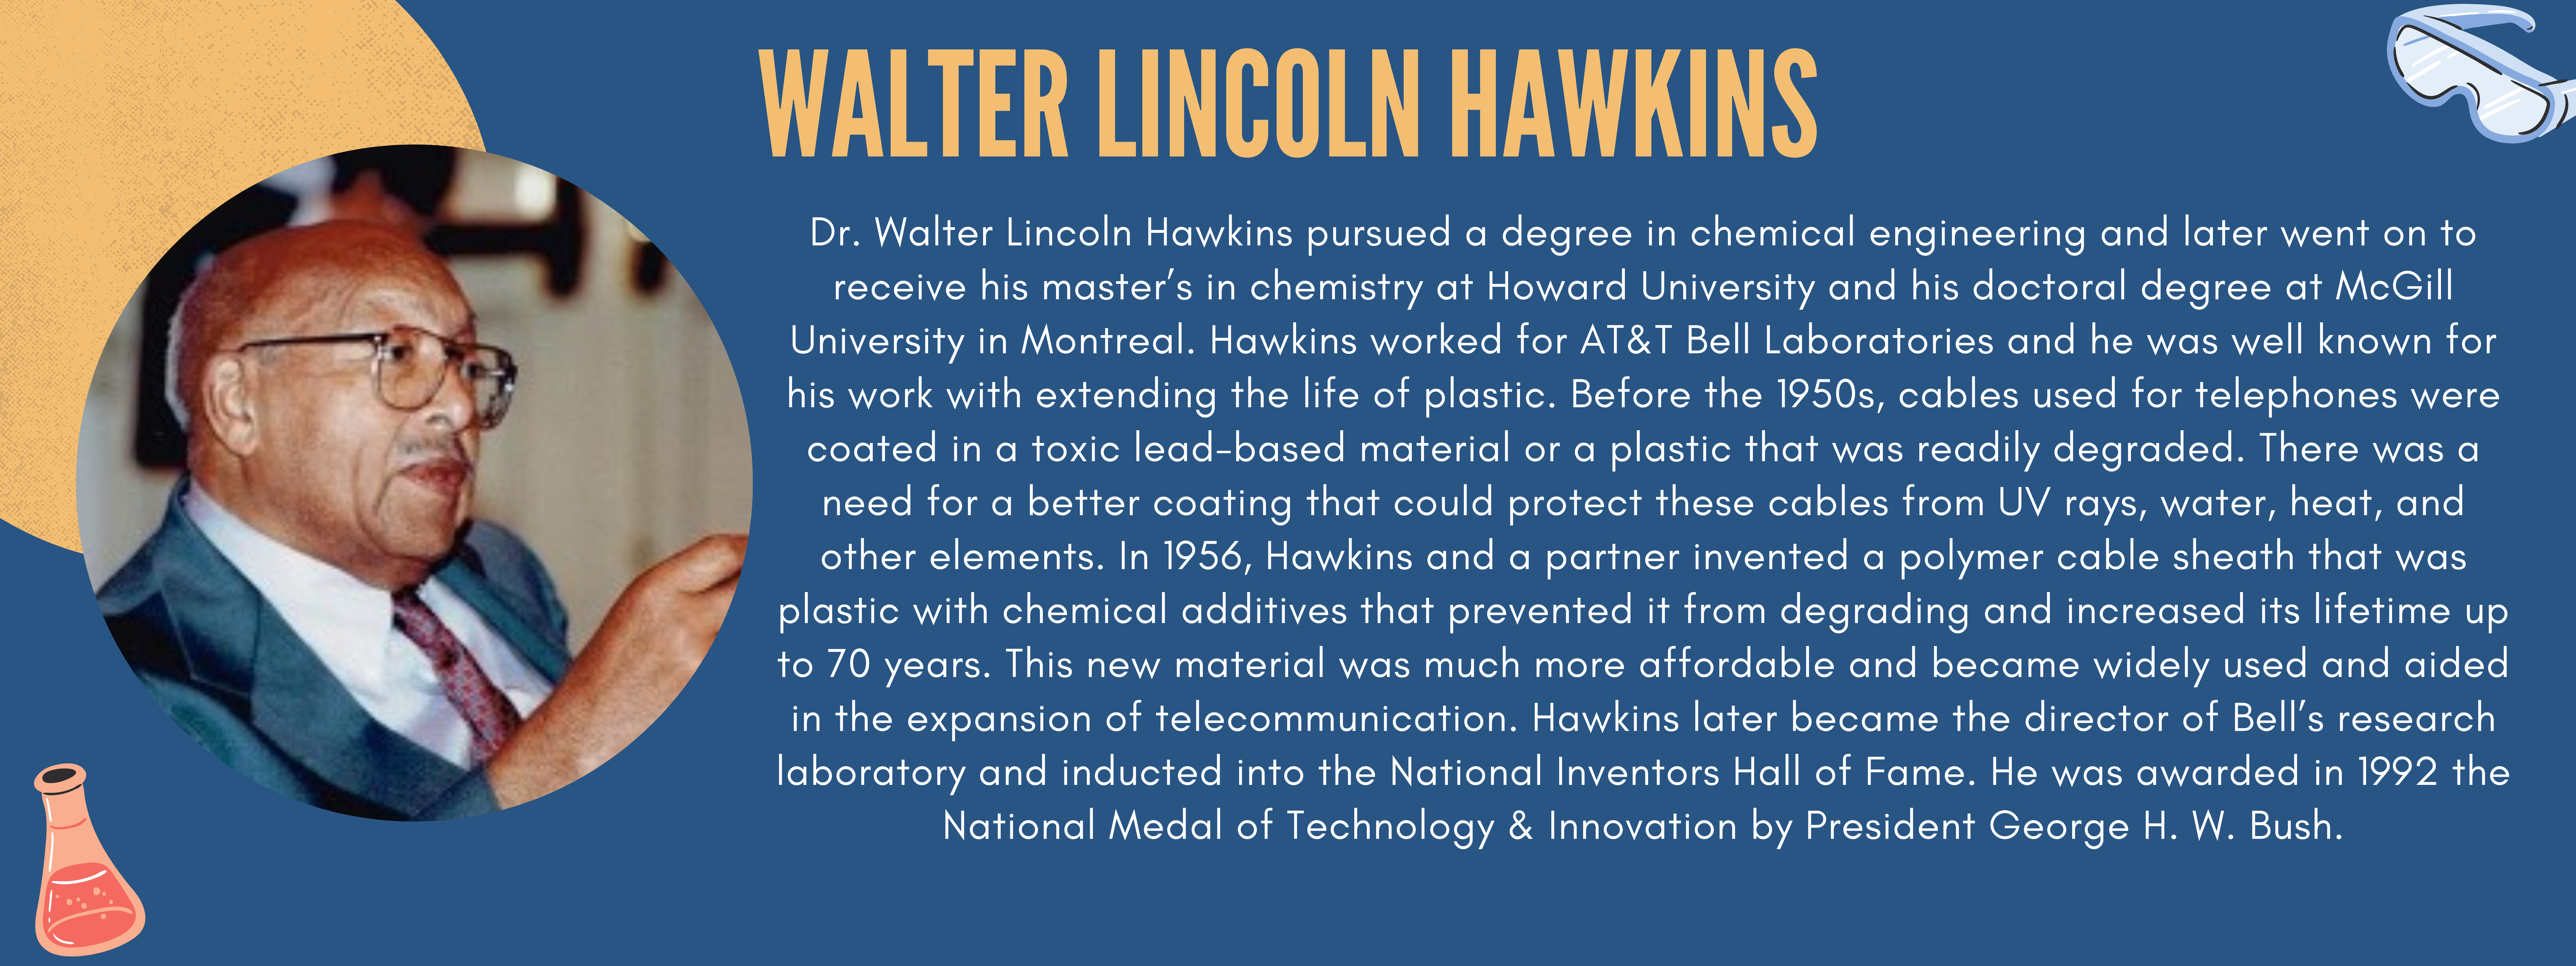 For this week's highlight, I wanted to focus on Dr. Walter Lincoln Hawkins. We are all familiar with Hawkins's work to some capacity. He pursued a degree in chemical engineering and later went on to receive his master's in chemistry at Howard University and his doctoral degree at McGill University in Montreal. Hawkins worked for AT&T Bell Laboratories and was the company's first African American scientist. During his 34-years at Bell labs, he was well known for his work with extending the life of plastic. Before the 1950s, cables used for telephones were coated in a toxic lead-based material or a plastic that was readily degraded. There was a need for a better coating that could protect these cables from UV rays, water, heat, and other elements. In 1956, Hawkins and a partner invented a polymer cable sheath that was plastic with chemical additives that prevented it from degrading and increased its lifetime up to 70years. This new material was much more affordable and became widely used and aided in the expansion of telecommunication. Hawkins later became the director of Bell's research laboratory and inducted into the National Inventors Hall of Fame. He was awarded in 1992 the National Medal of Technology & Innovation by President George H. W. Bush.